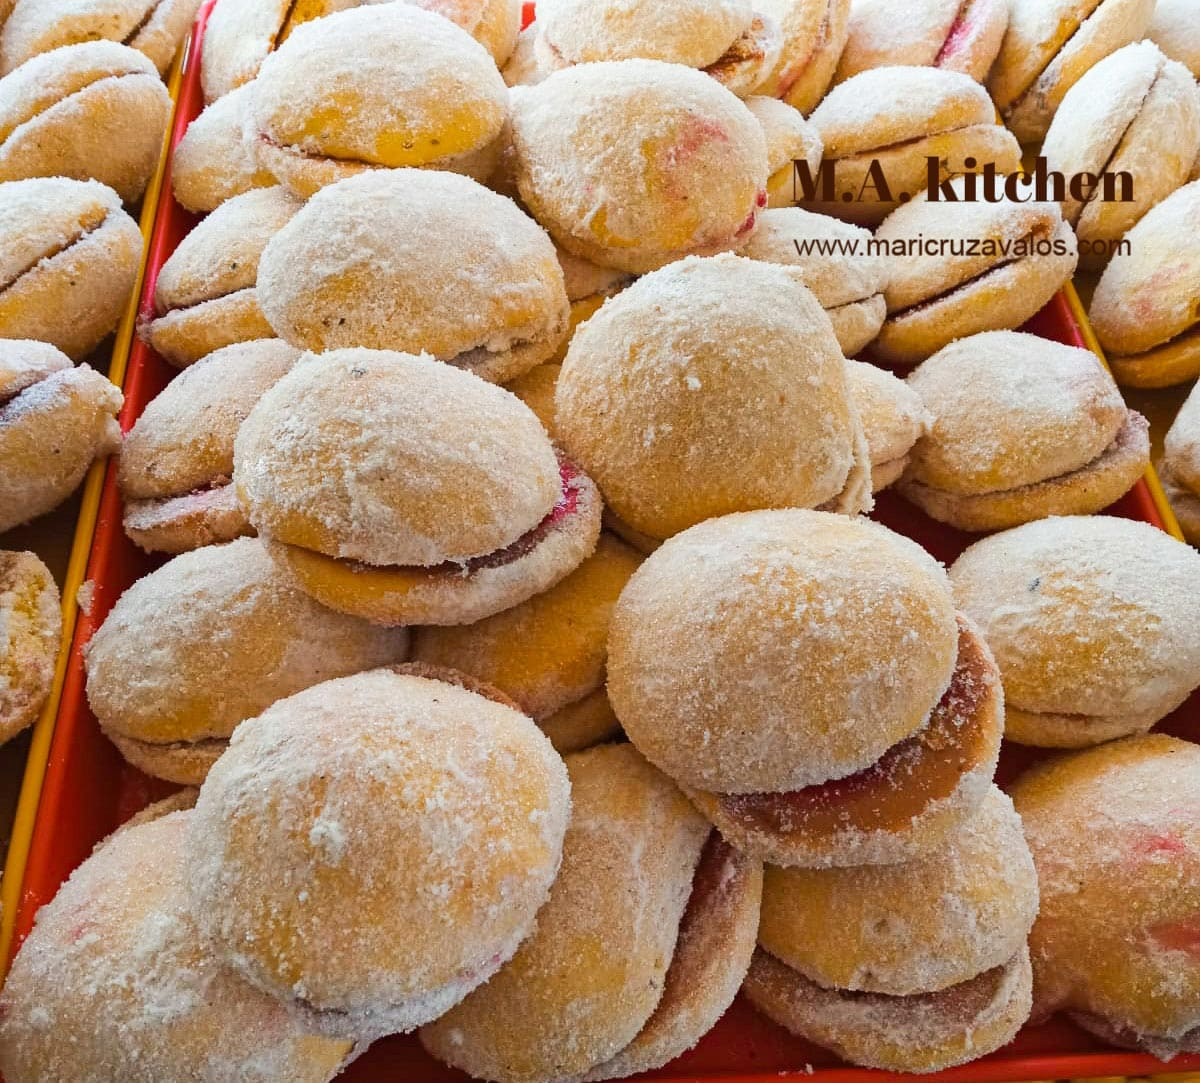 Besos, Mexican pan dulce, piled on a bakery tray.